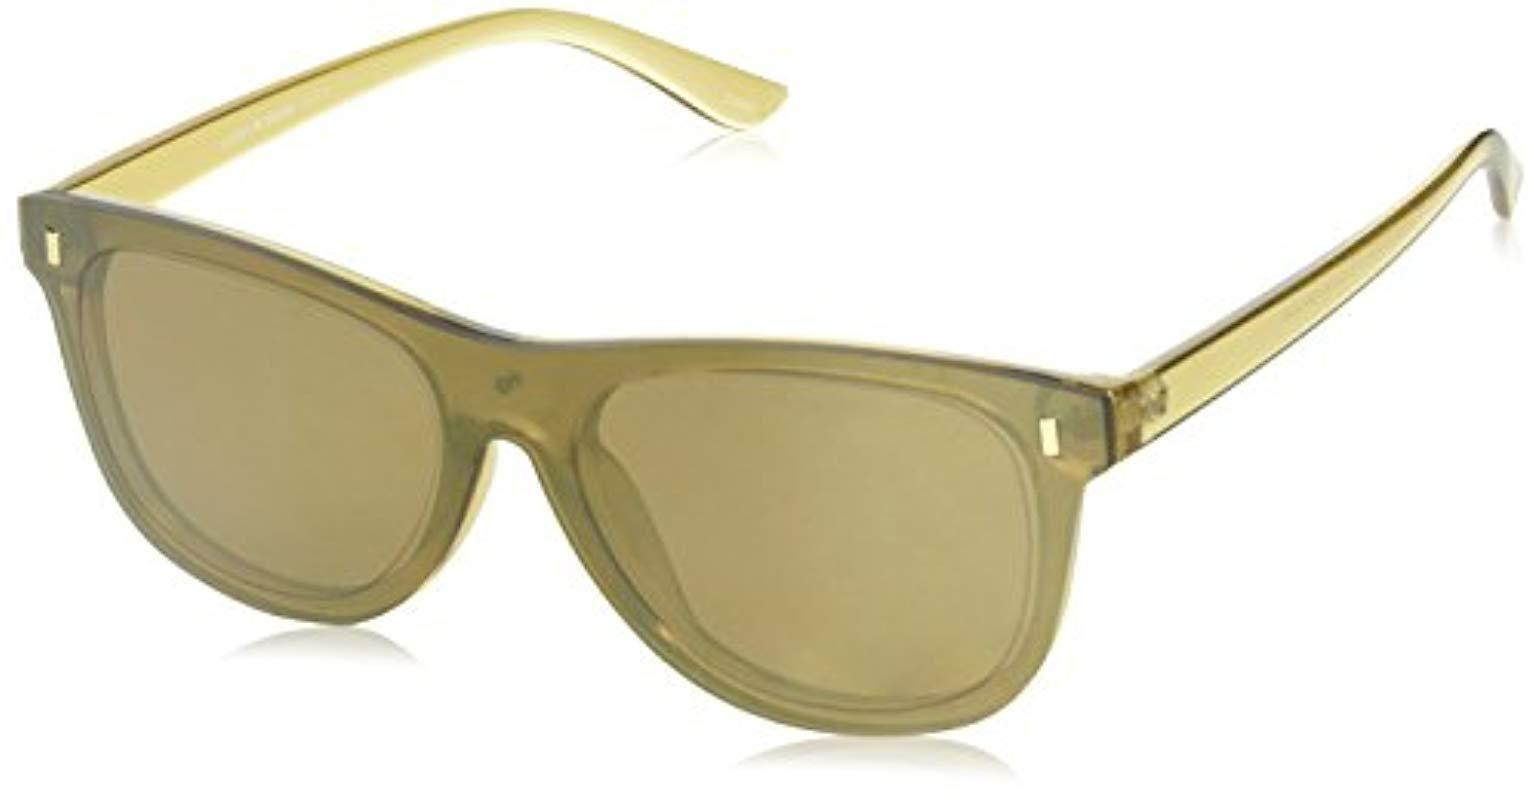 740467a28e7 Lyst - Lucky Brand Lucky Robrbro57 Cateye Sunglasses Brown 57 Mm in ...